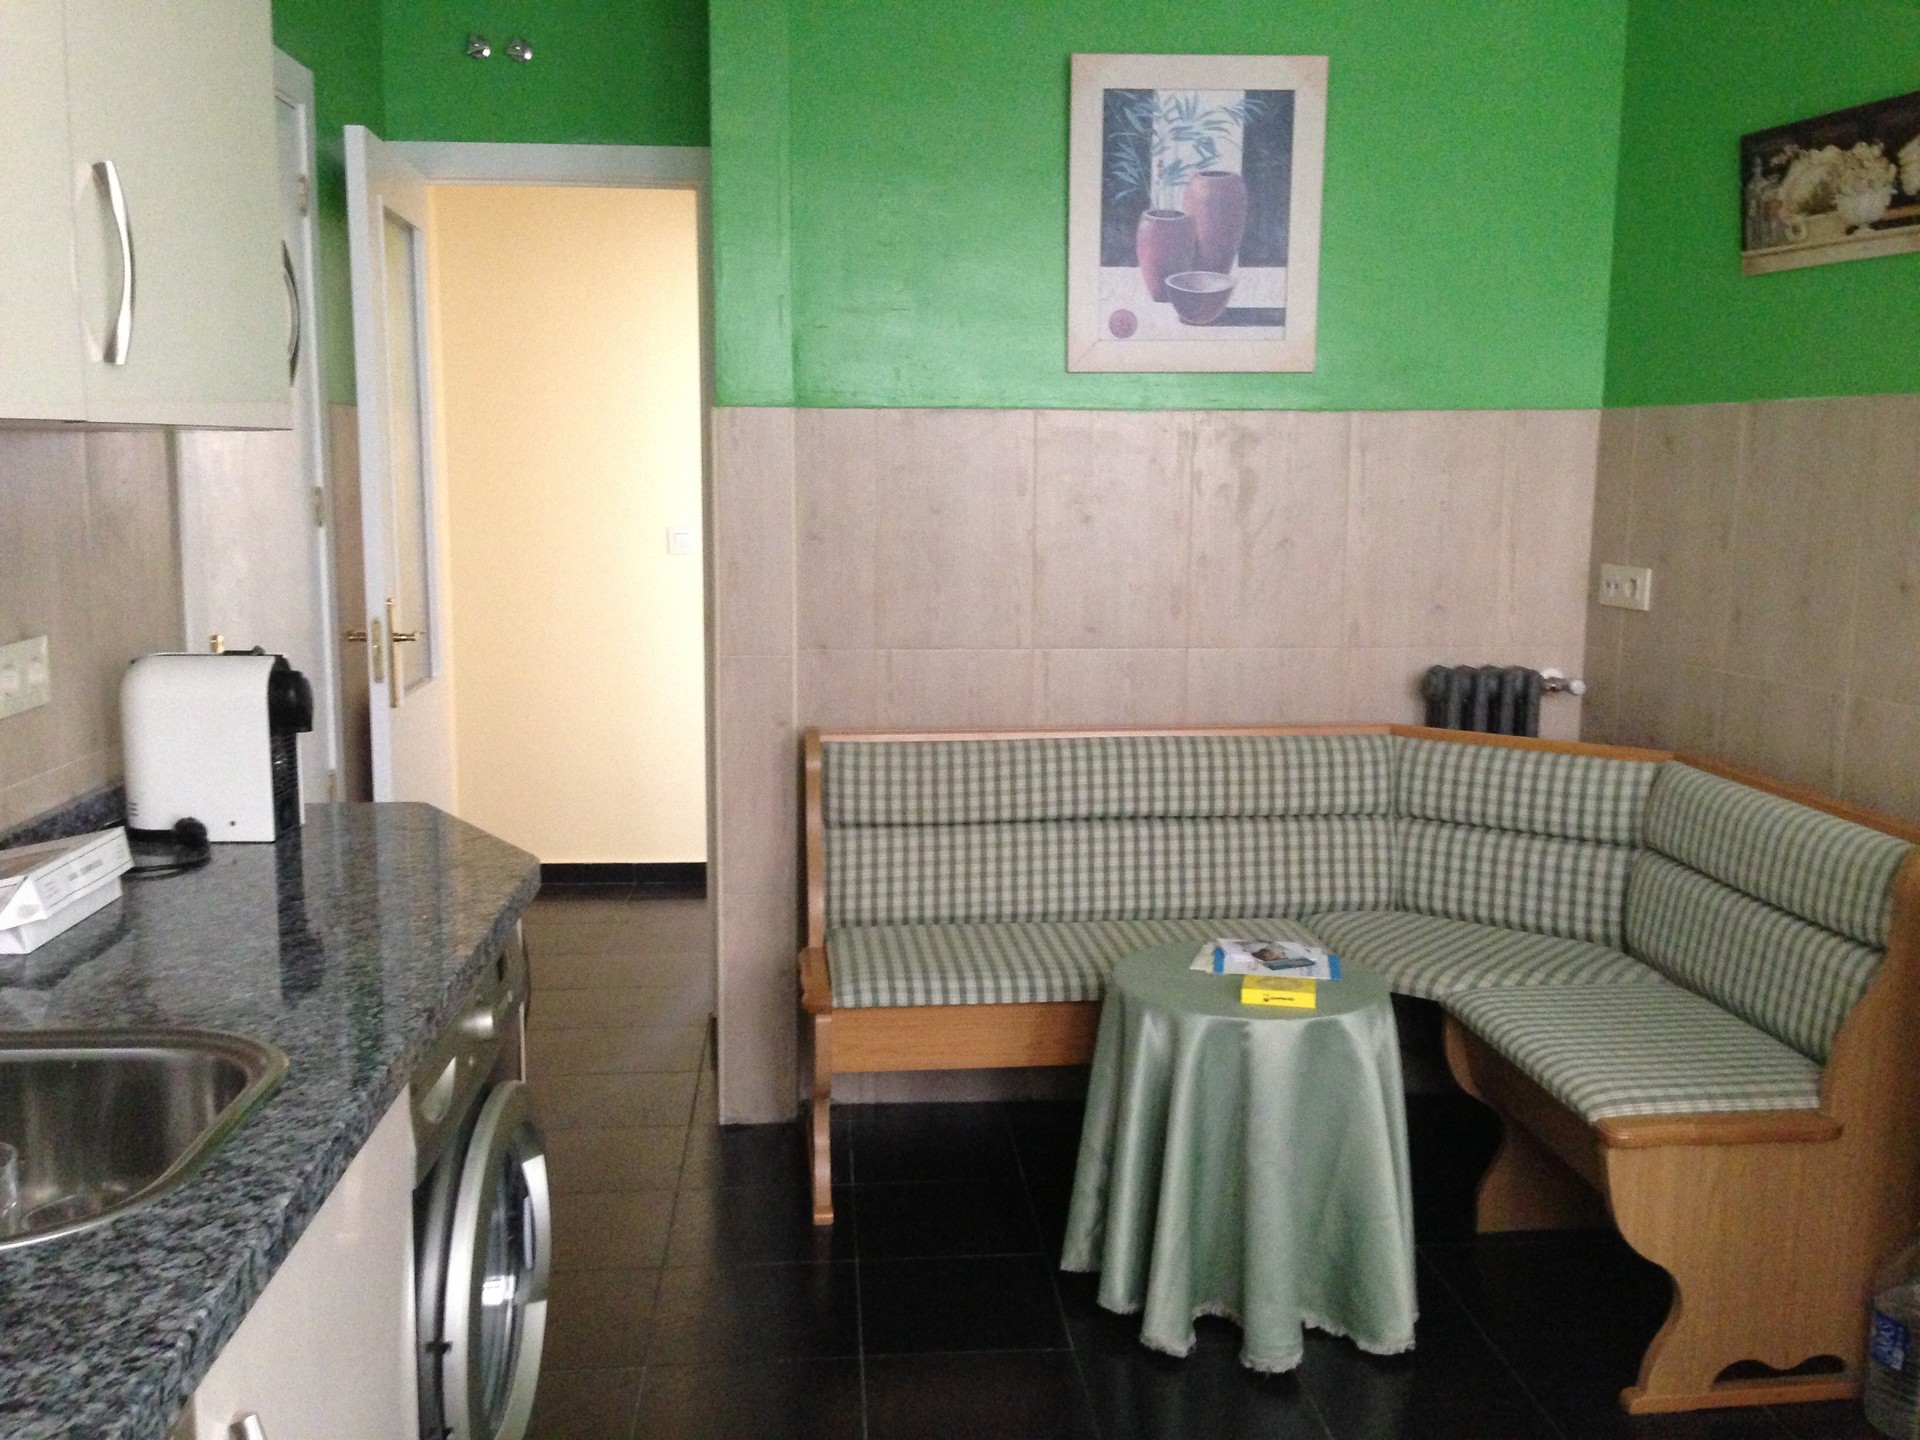 Rooms For Rent In The Center Of Valladolid Room For Rent Valladolid # Muebles Low Cost Valladolid